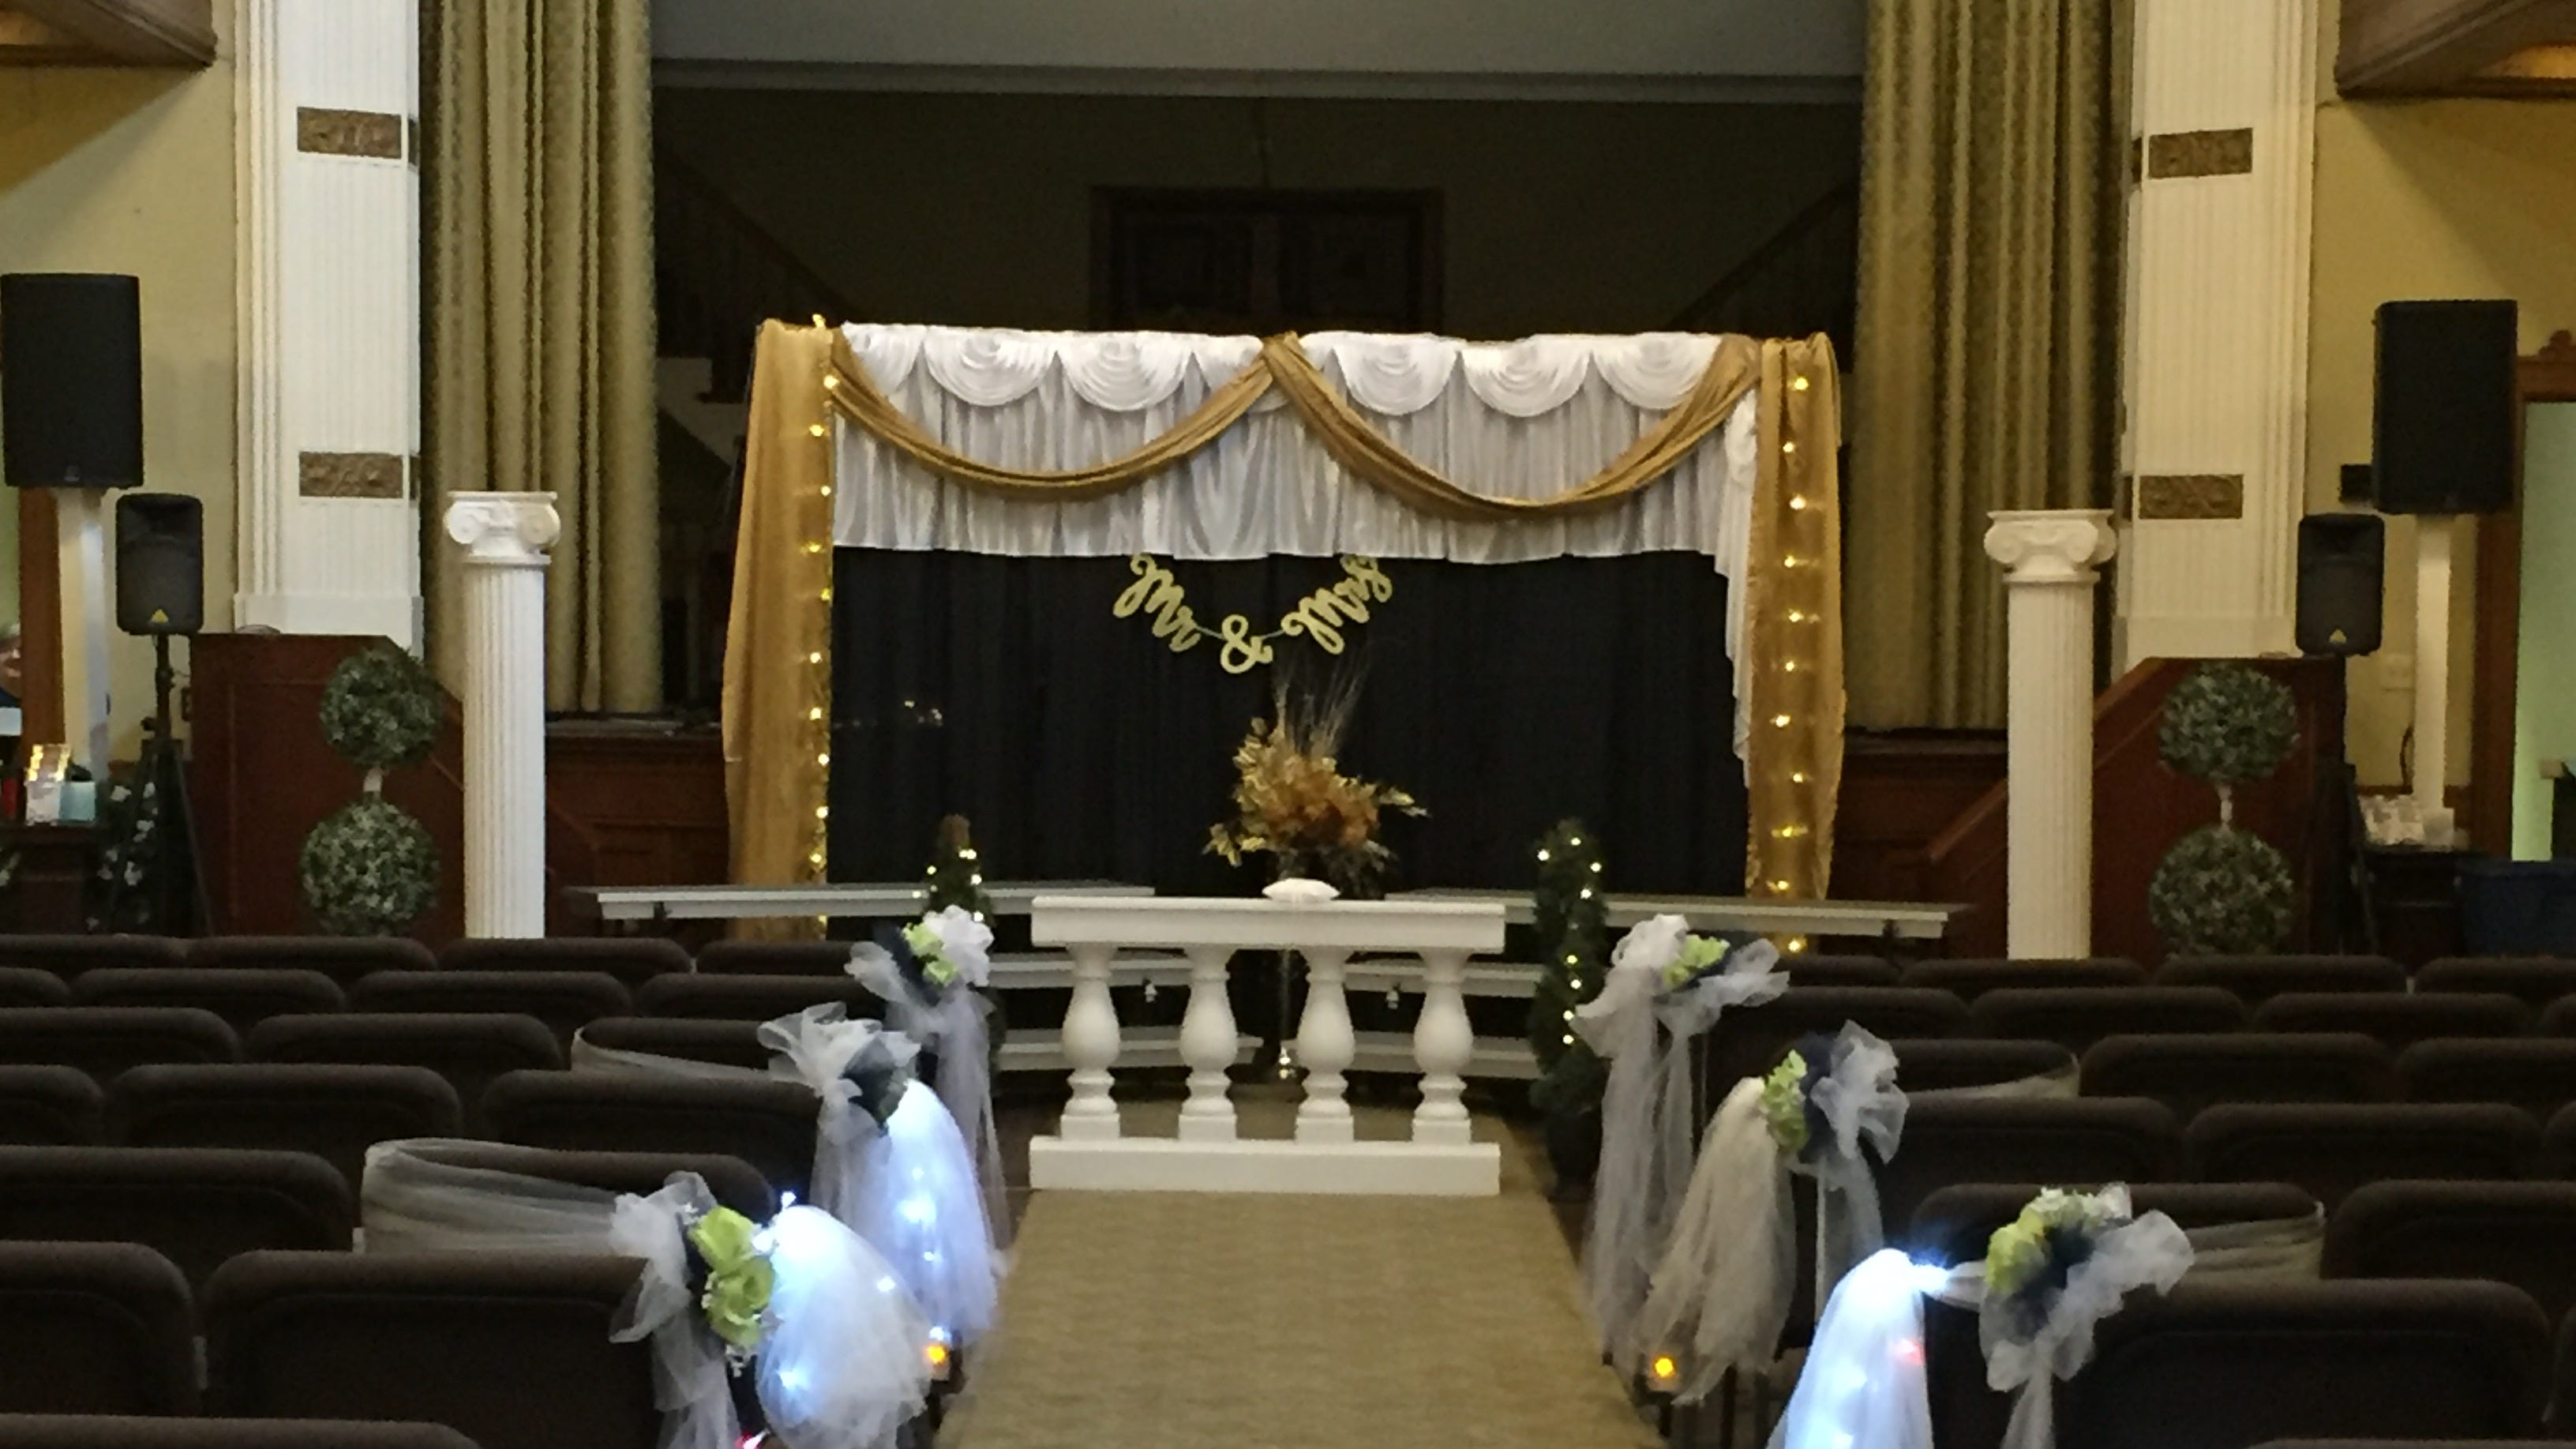 Lebanon church to marry 16 couples at once